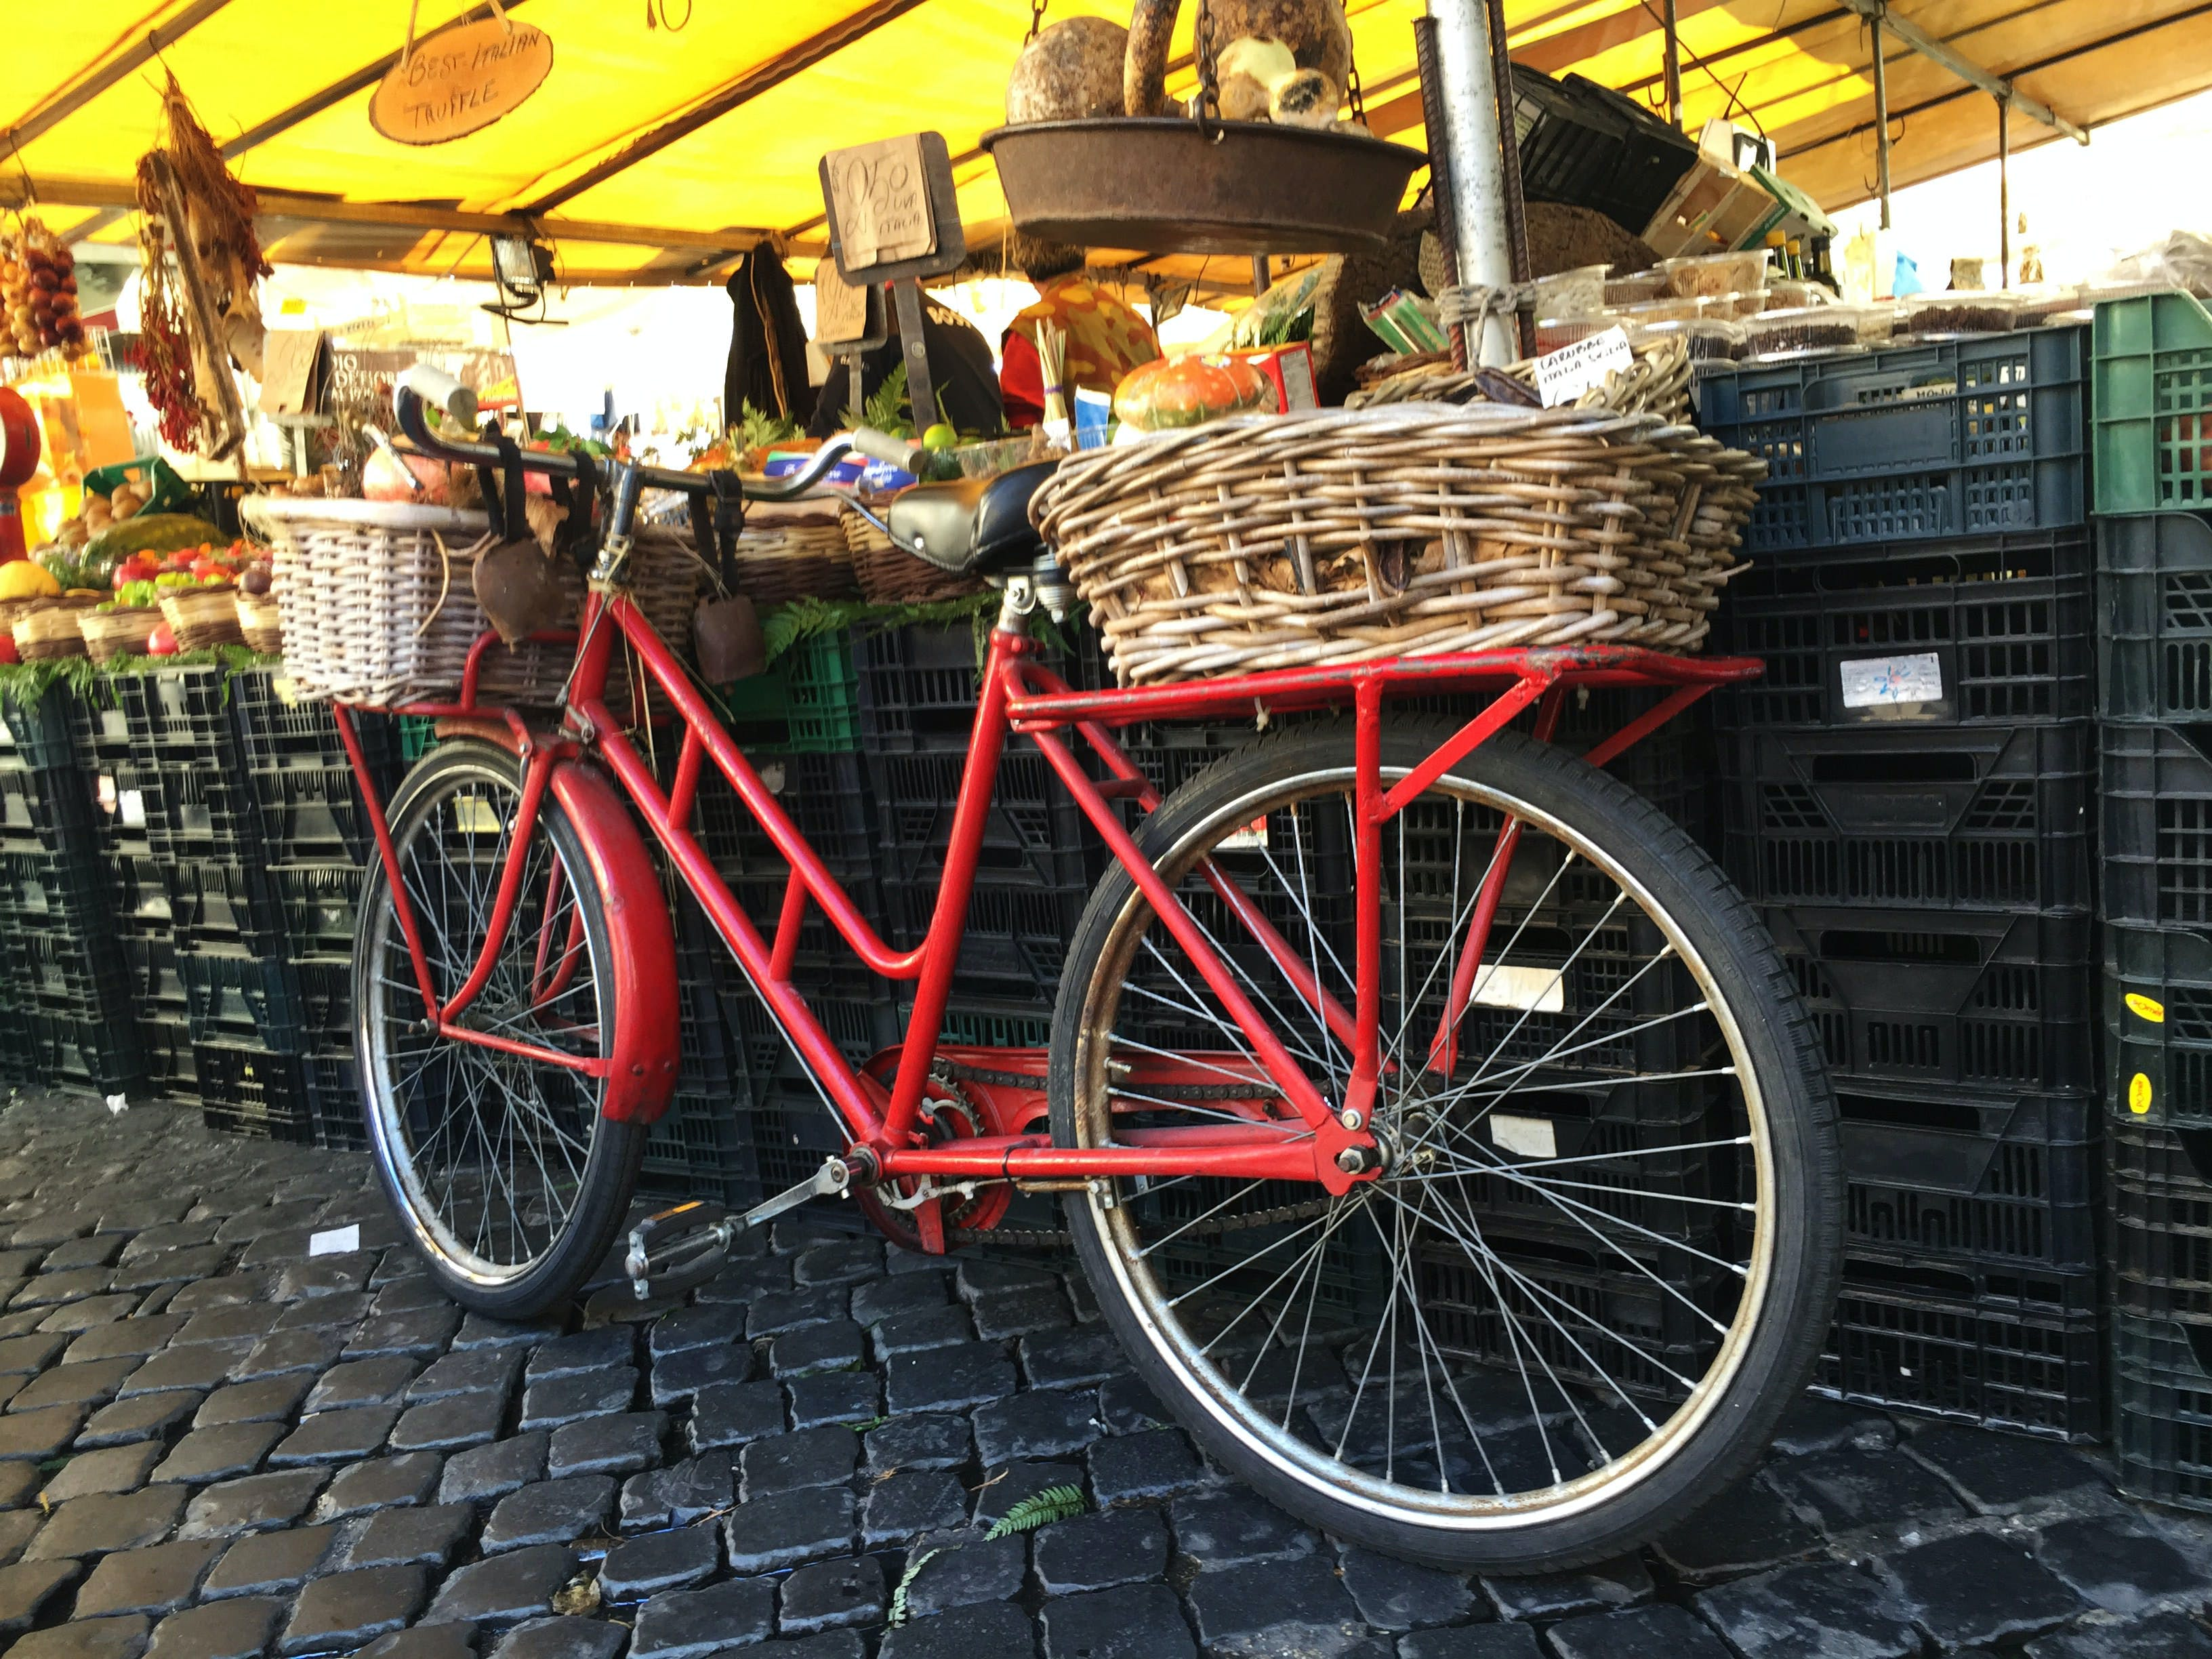 Free stock photo of basket, bicycle, marketplace, spices